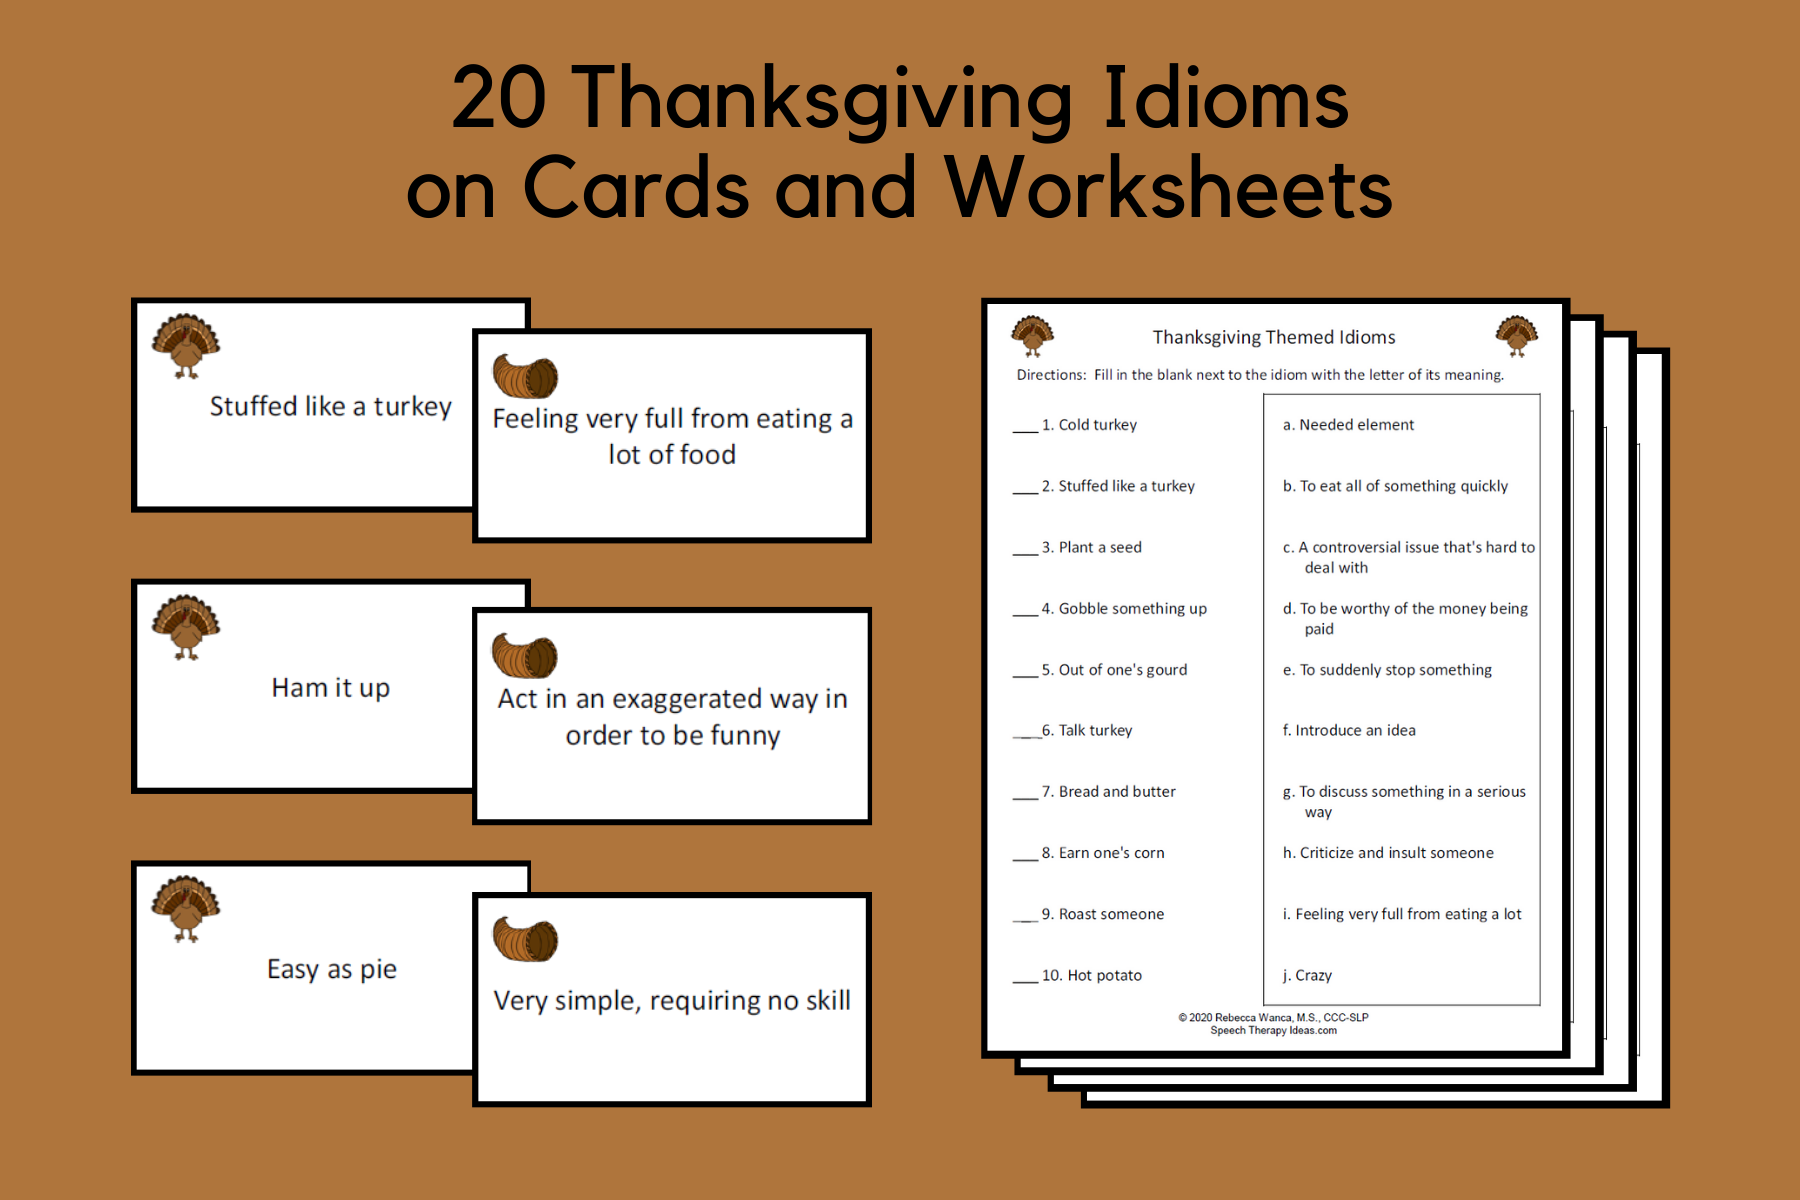 Thanksgiving Idiom Cards And Worksheets